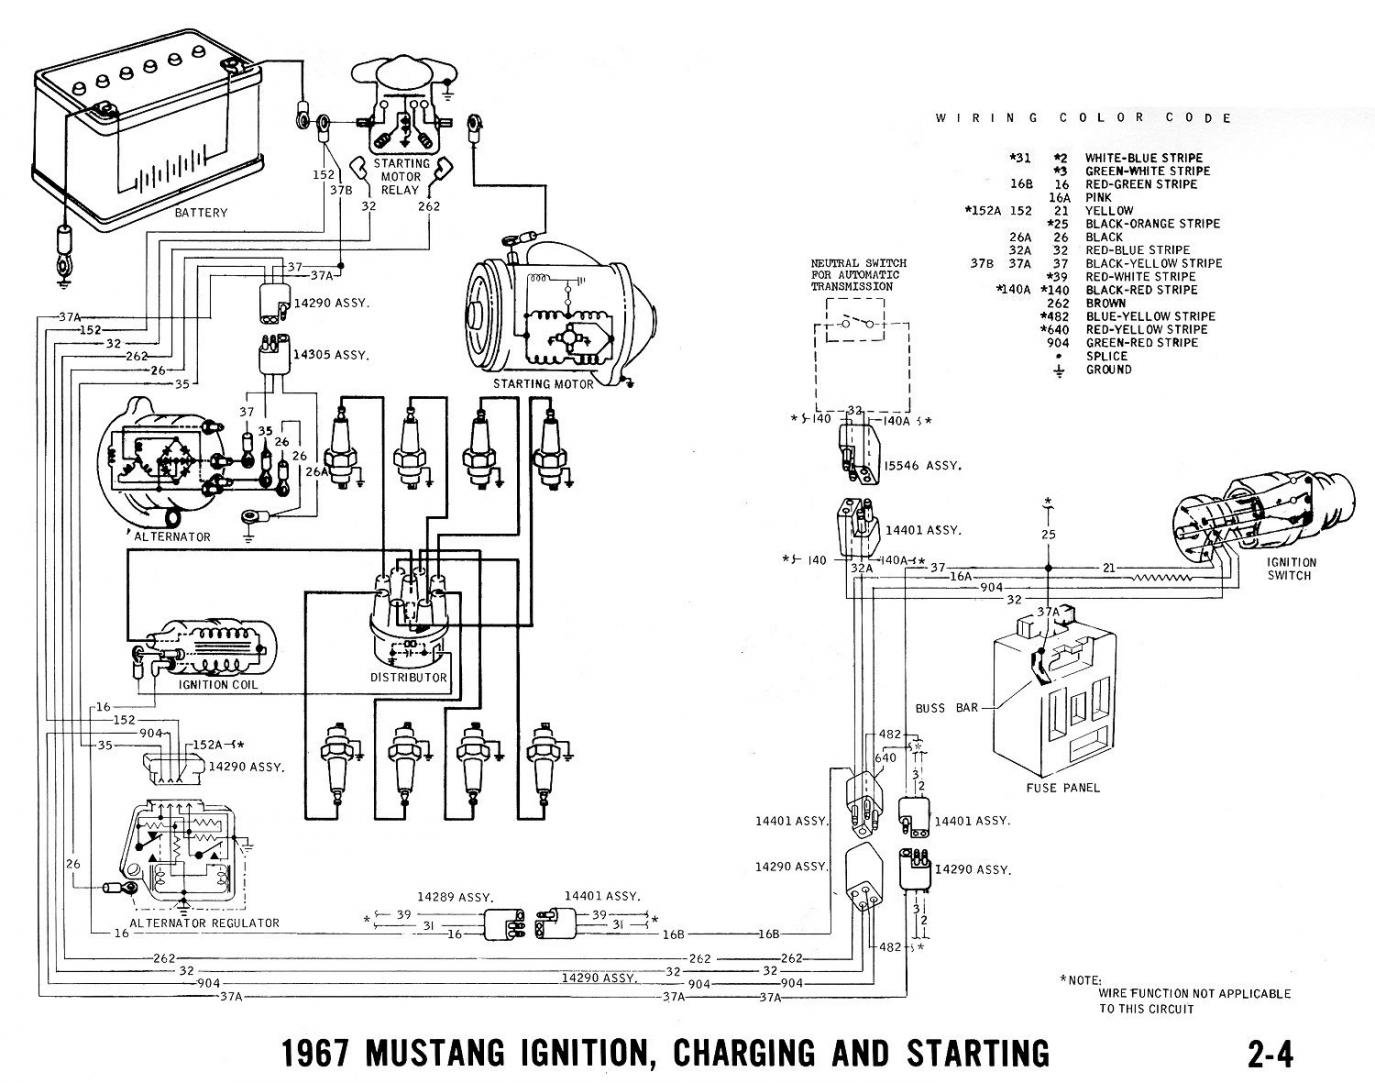 1970 plymouth satellite diagrama de cableado